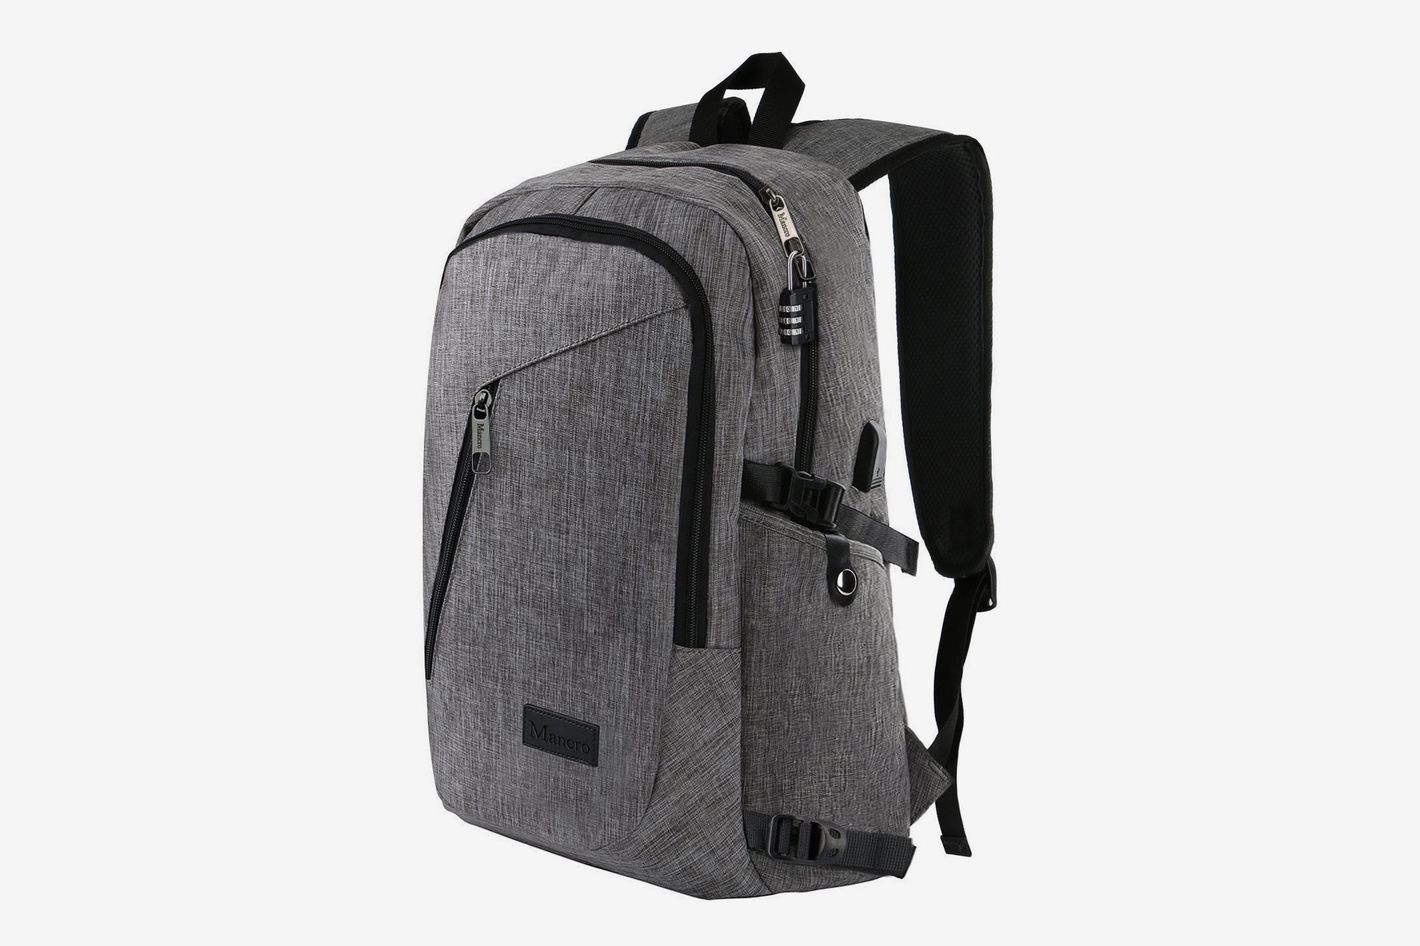 31195c77e9c8 16 Best Backpacks for Boys 2018